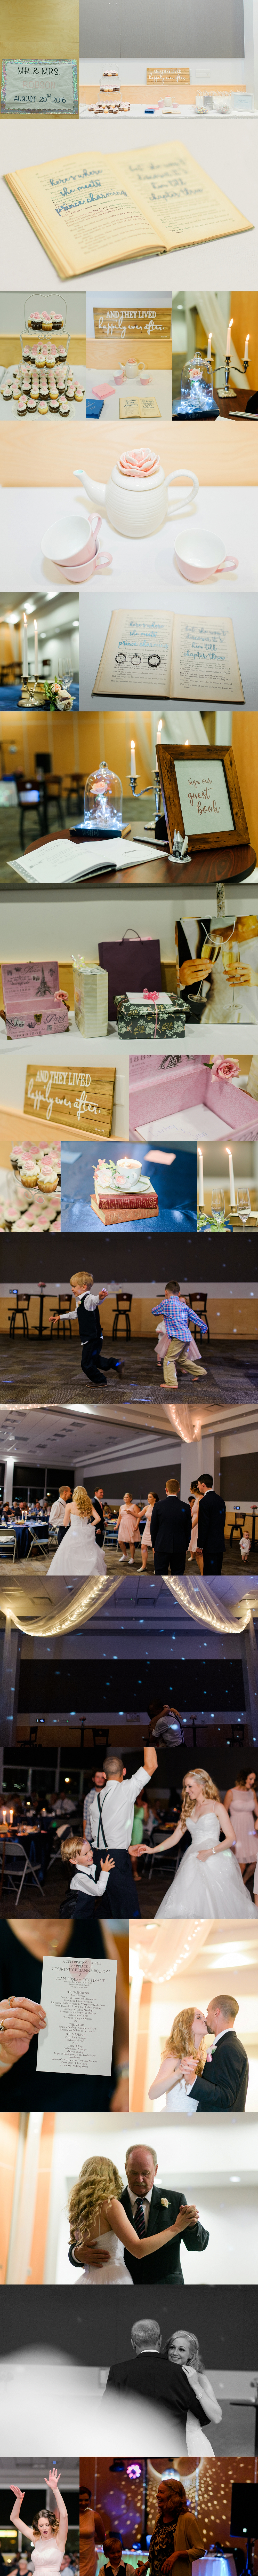 bride and groom celebrating their wedding with a reception at the pictou county wellness center